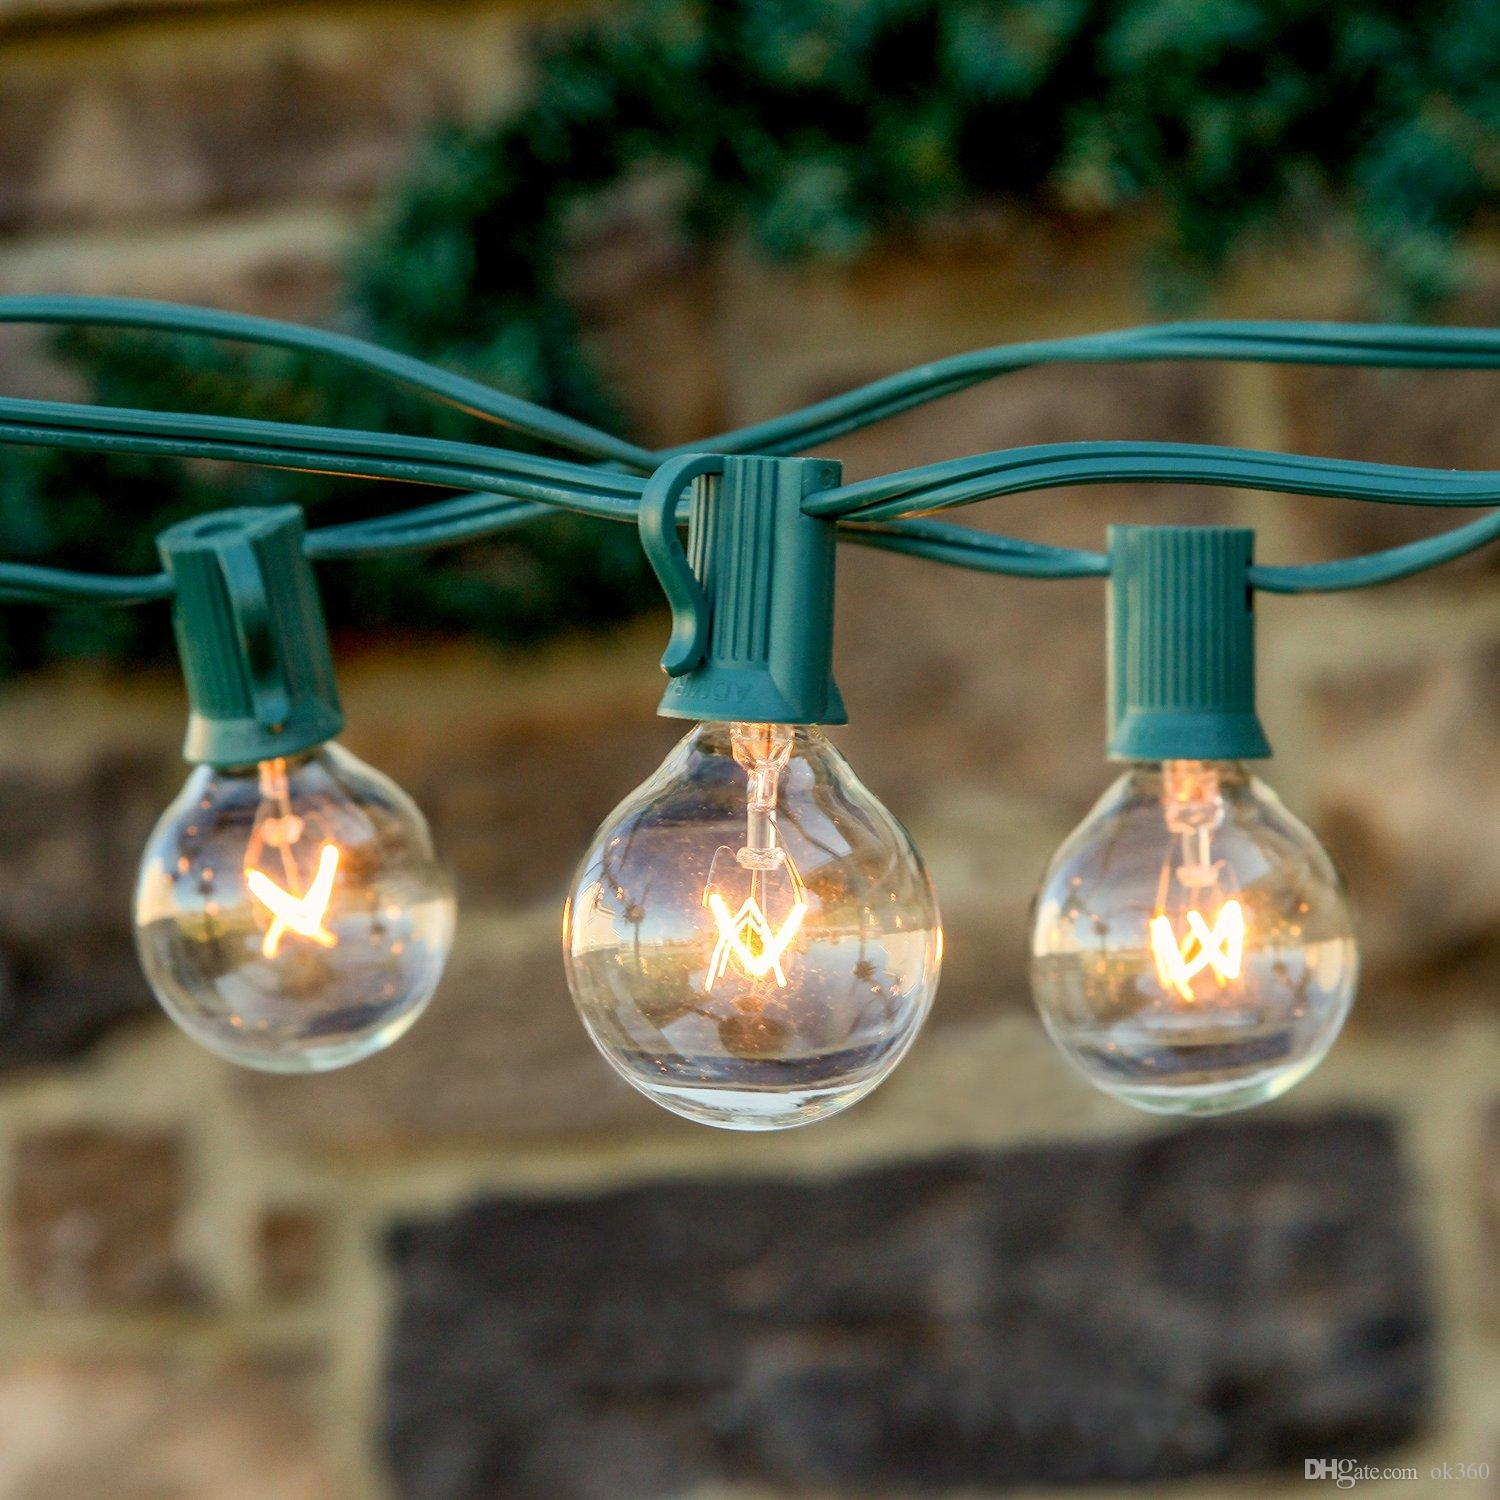 Good String Lights 25Ft Clear Globe Bulb G40 String Light Set With 25 G40 Bulbs  Included Patio Lightsu0026Patio String Lights G40 Bulb String Lamp